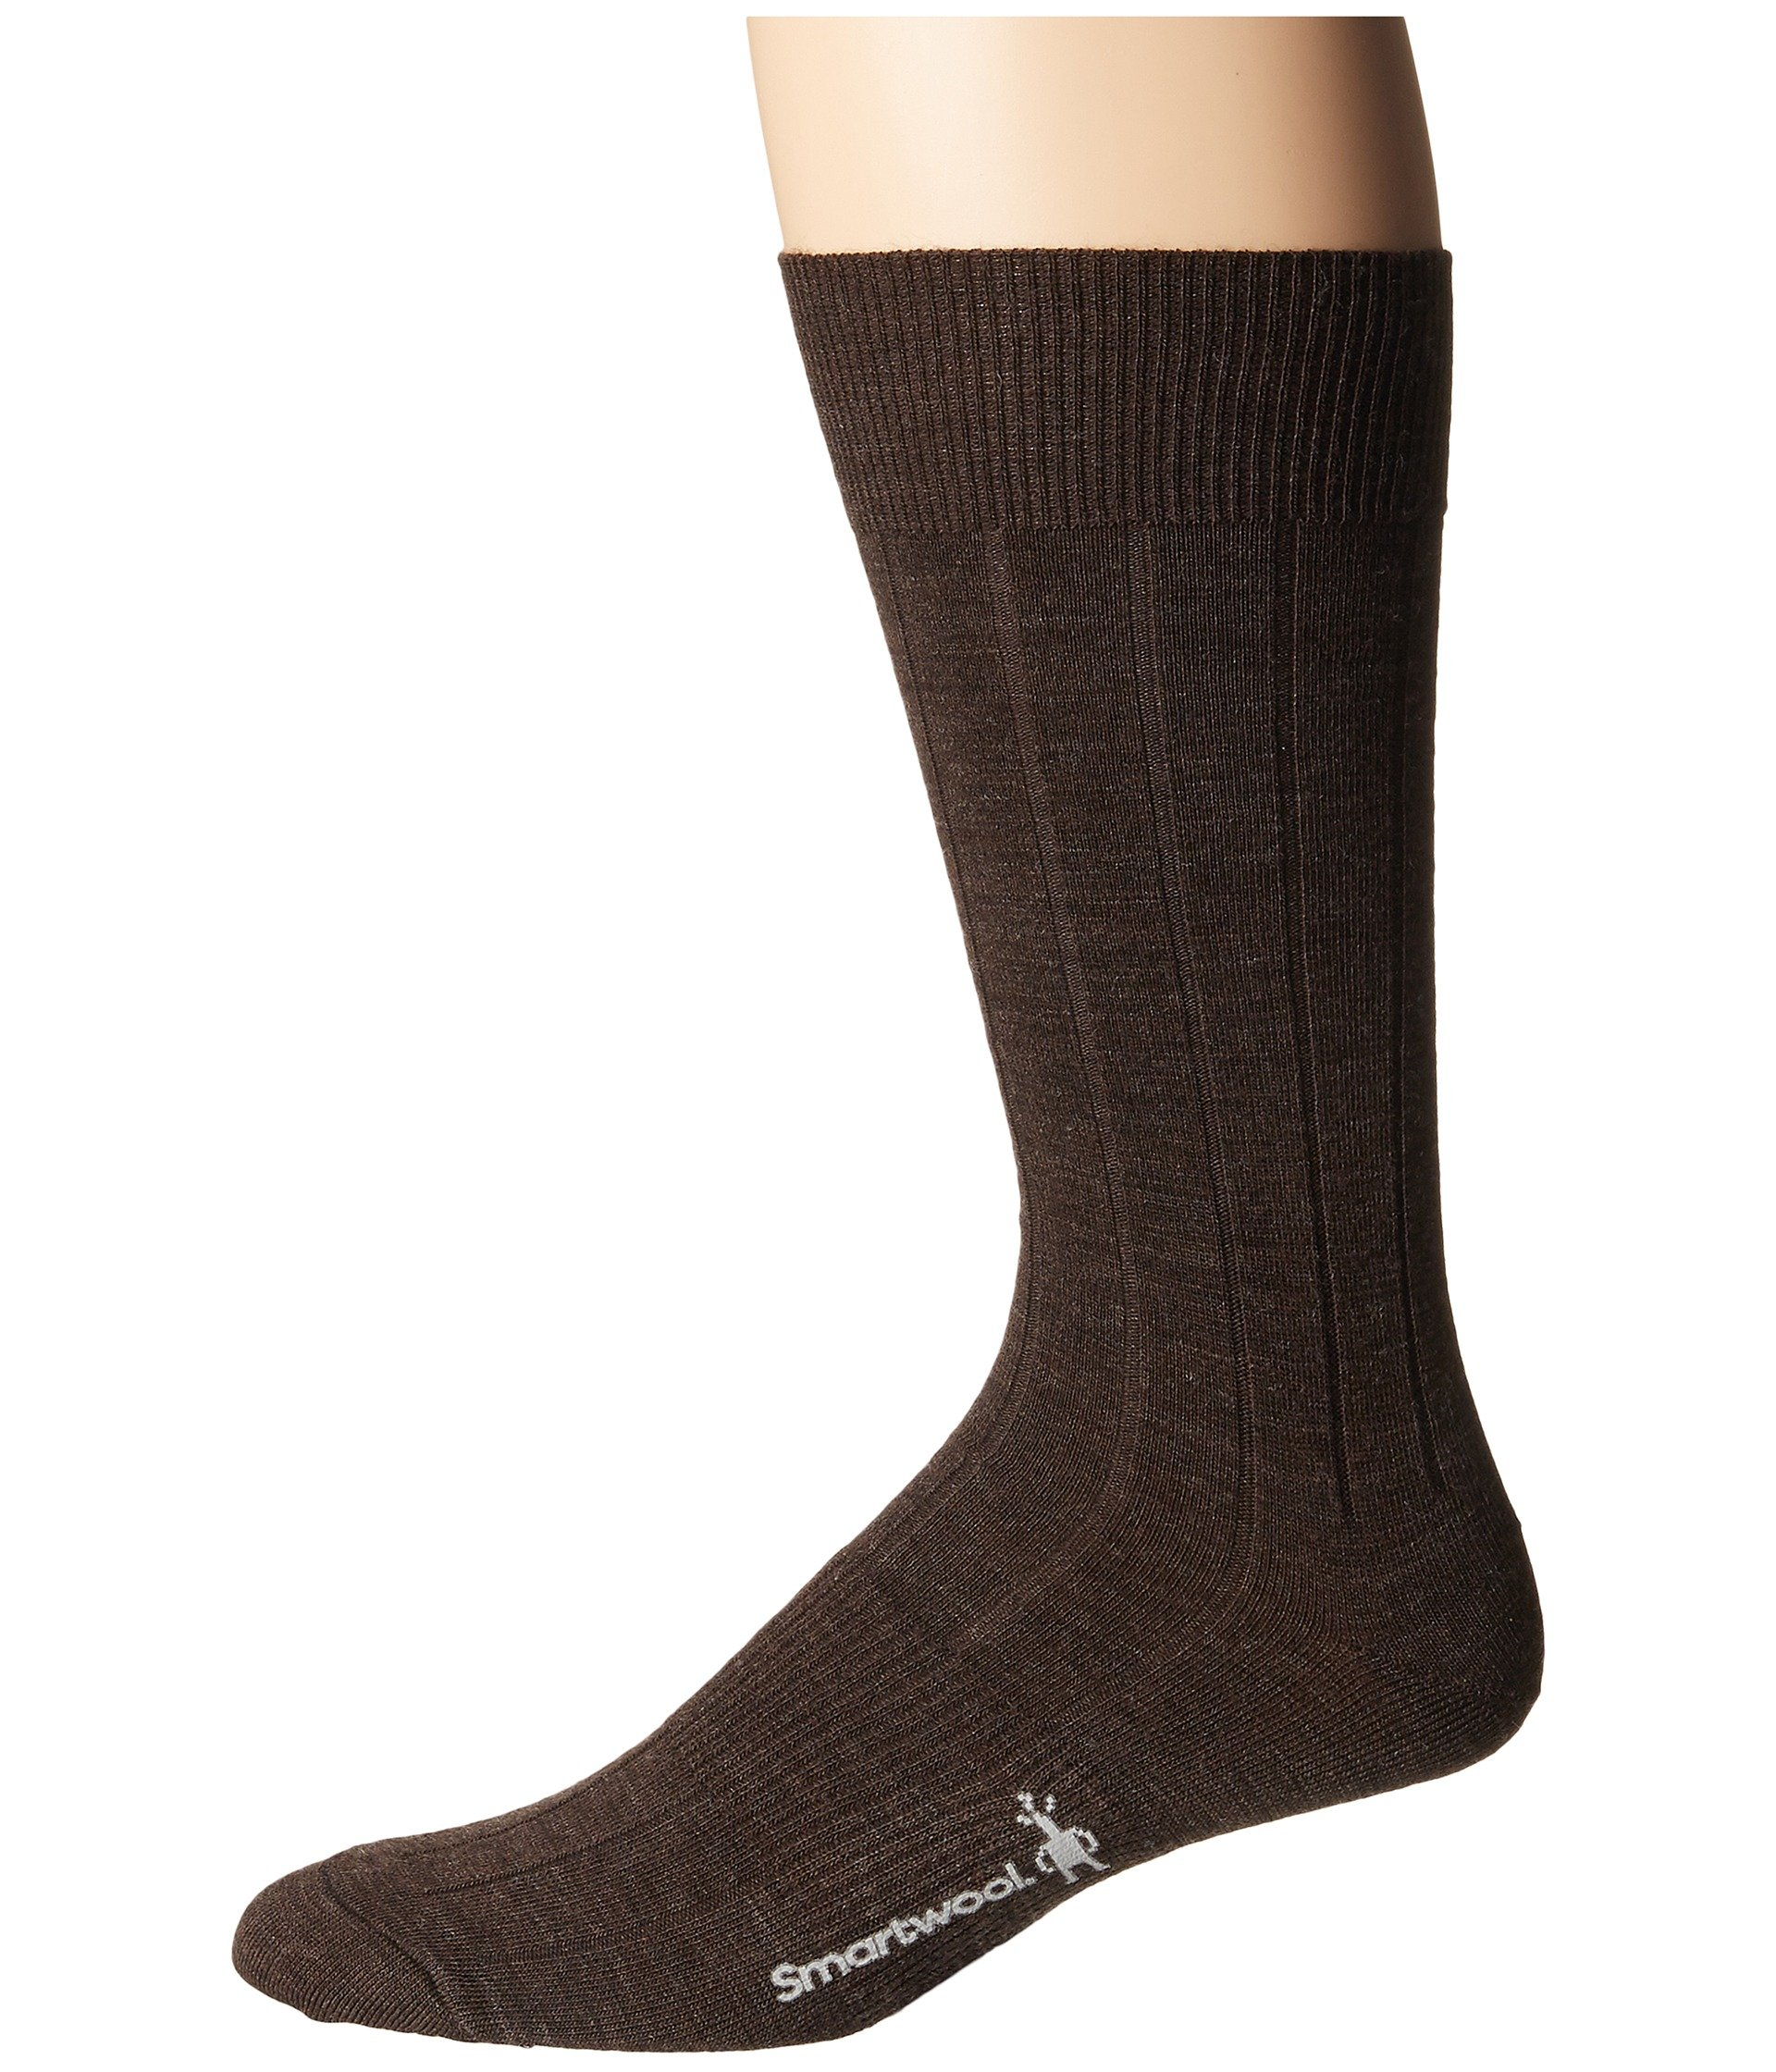 Chocolate Smartwool Chocolate Slicker City Slicker Smartwool Slicker Smartwool City City City Chocolate Smartwool rq7wraSx05